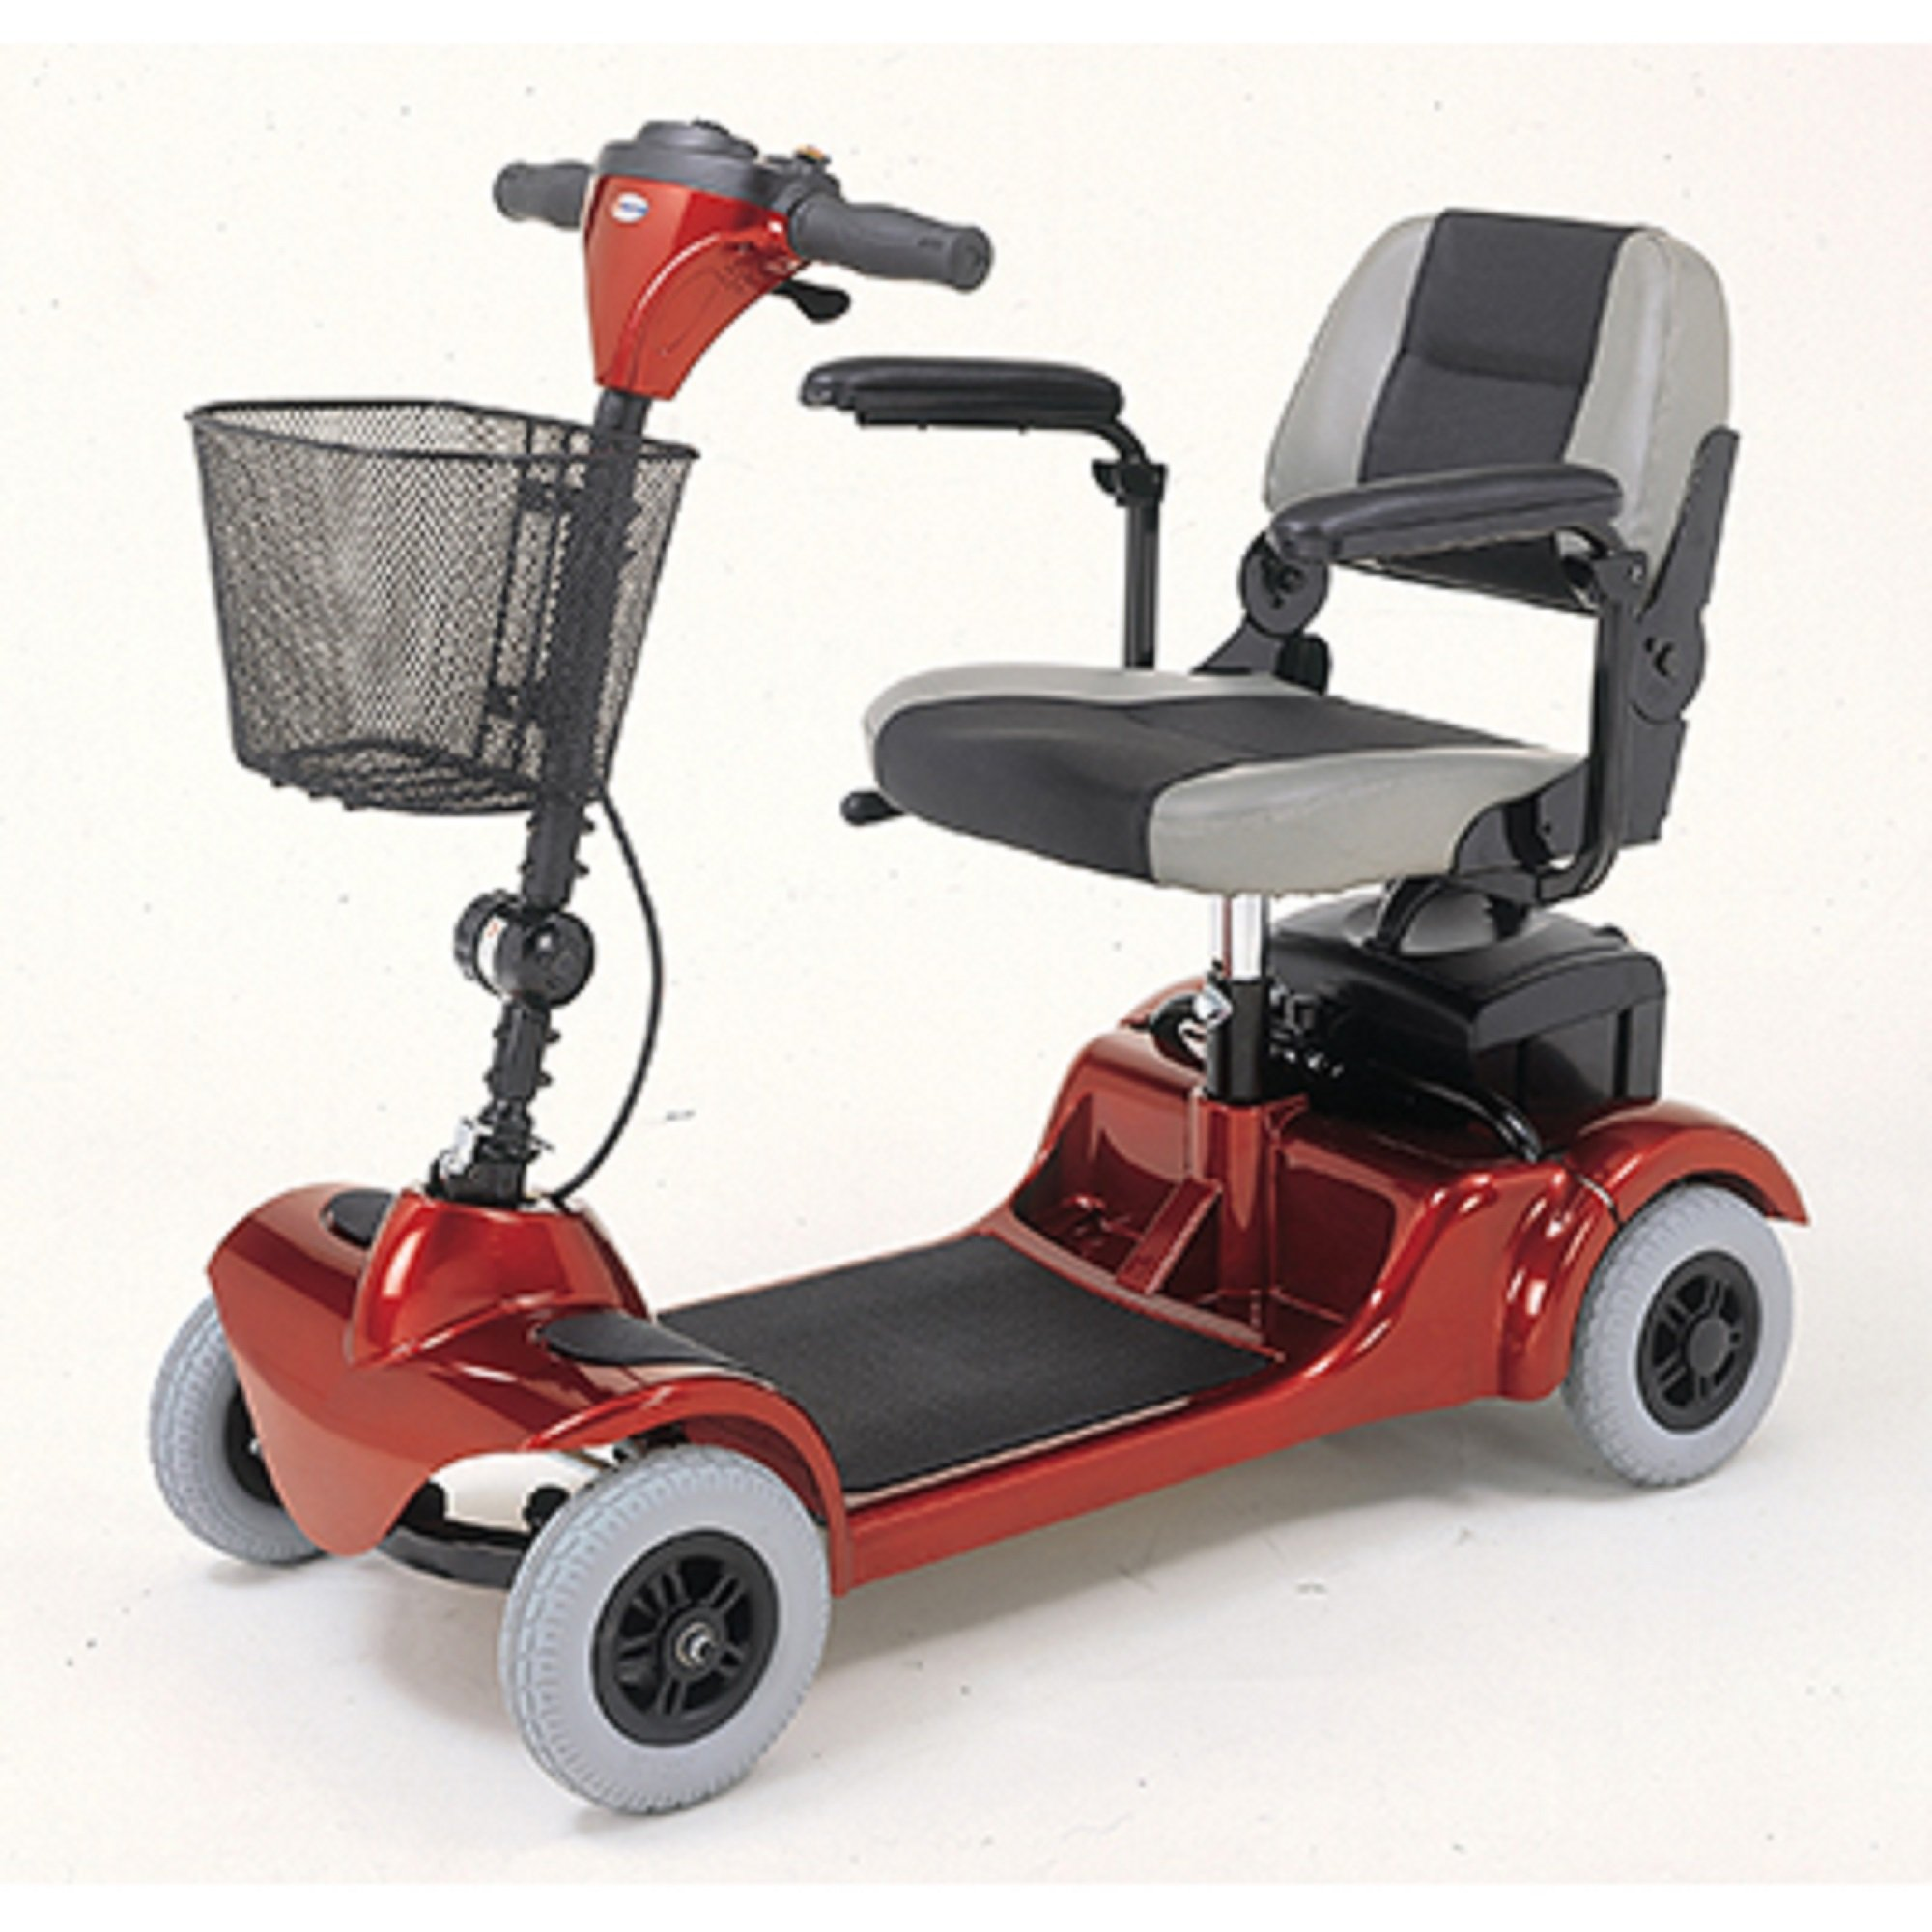 Merits Health Products - Mini Coupe - 4-Wheel Super Micro Electric Scooter - 16.5''W x 15.5''D - Red by Mini Coupe (Image #1)